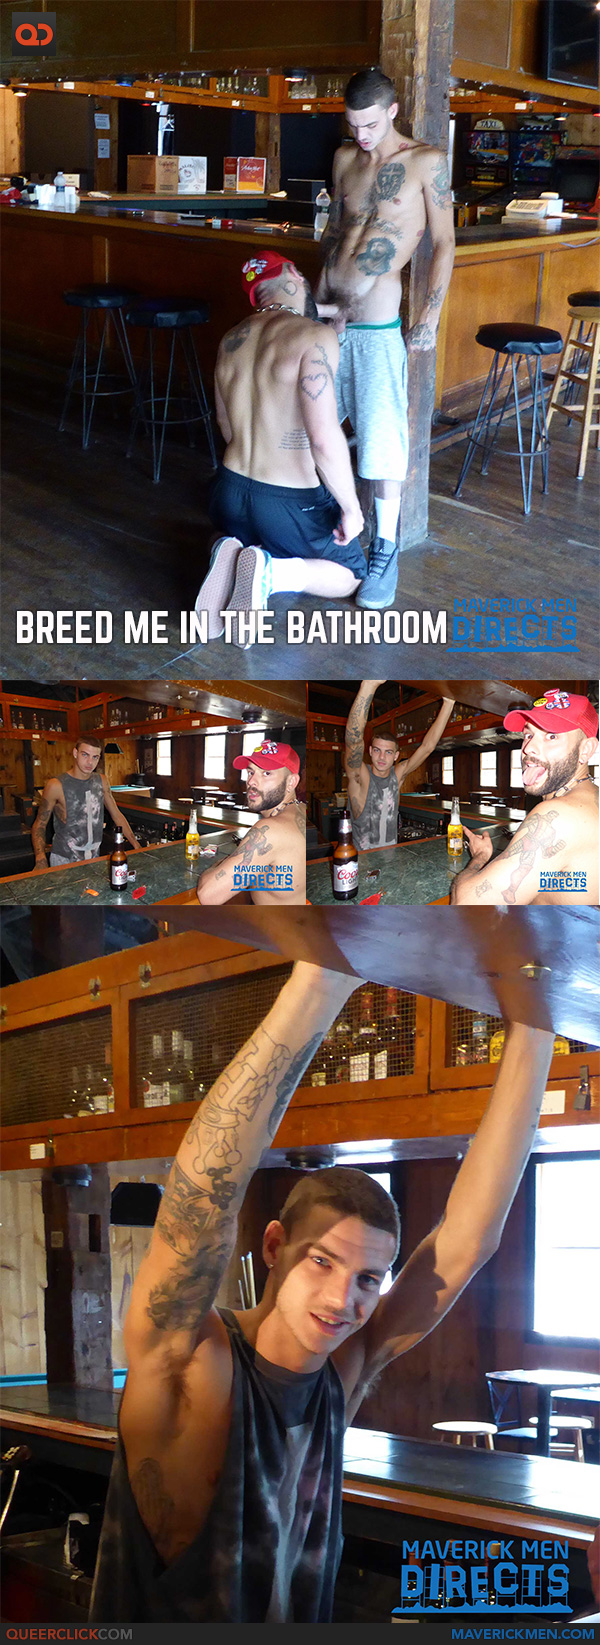 Maverick Men Directs: Breed Me In The Bathroom